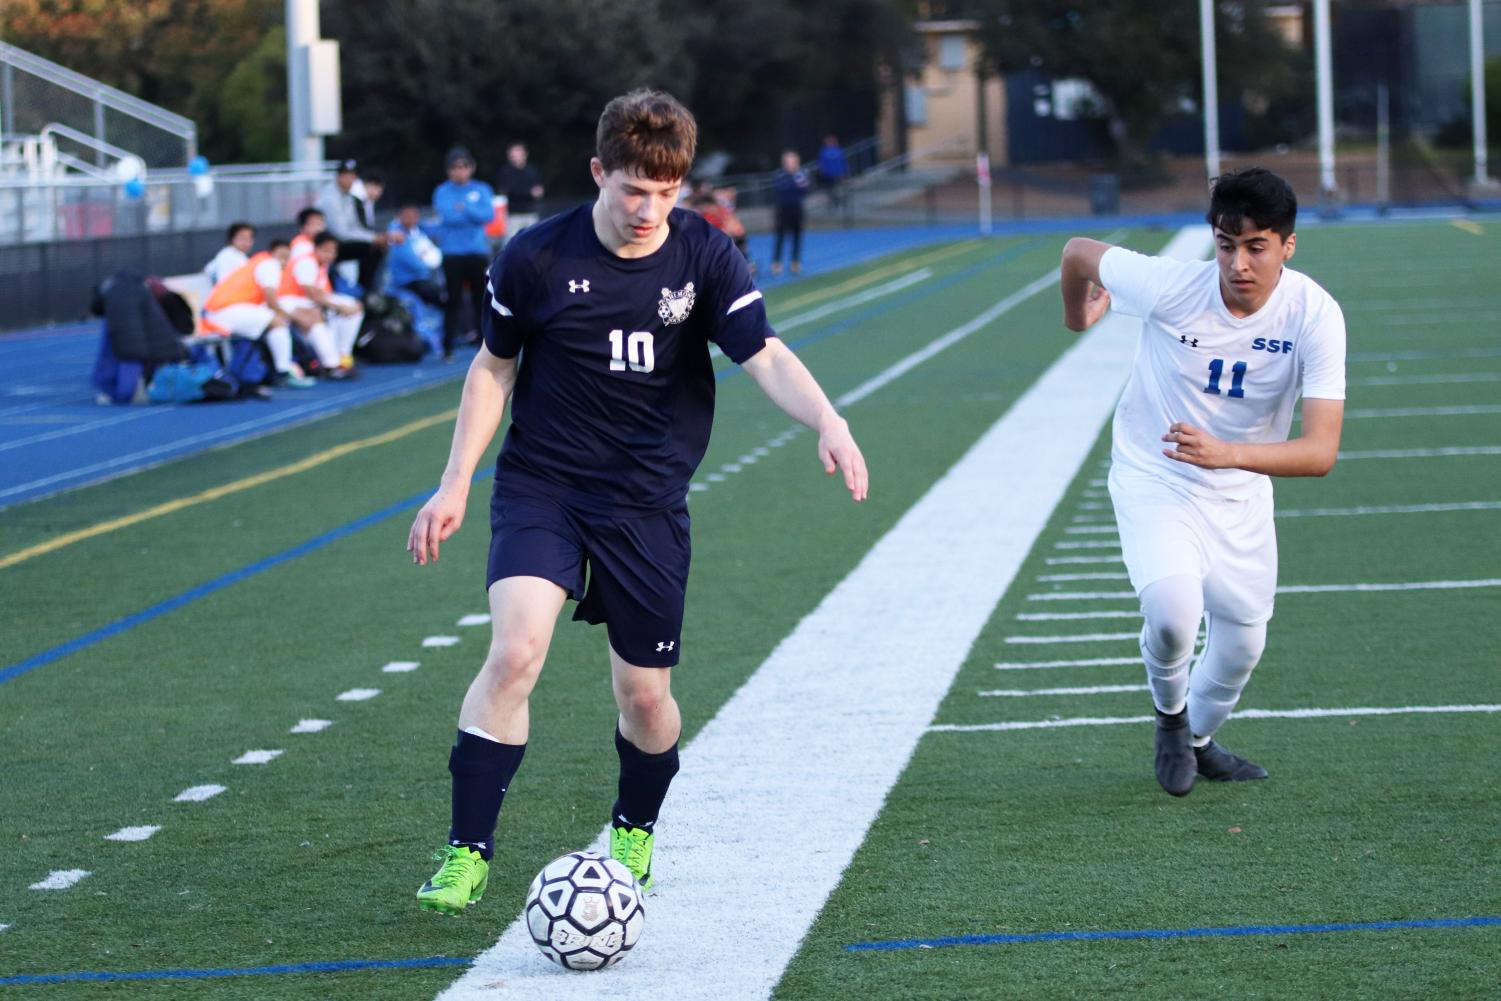 Dylan Roskind, a junior, dribbles the ball down the sideline and past a defender.